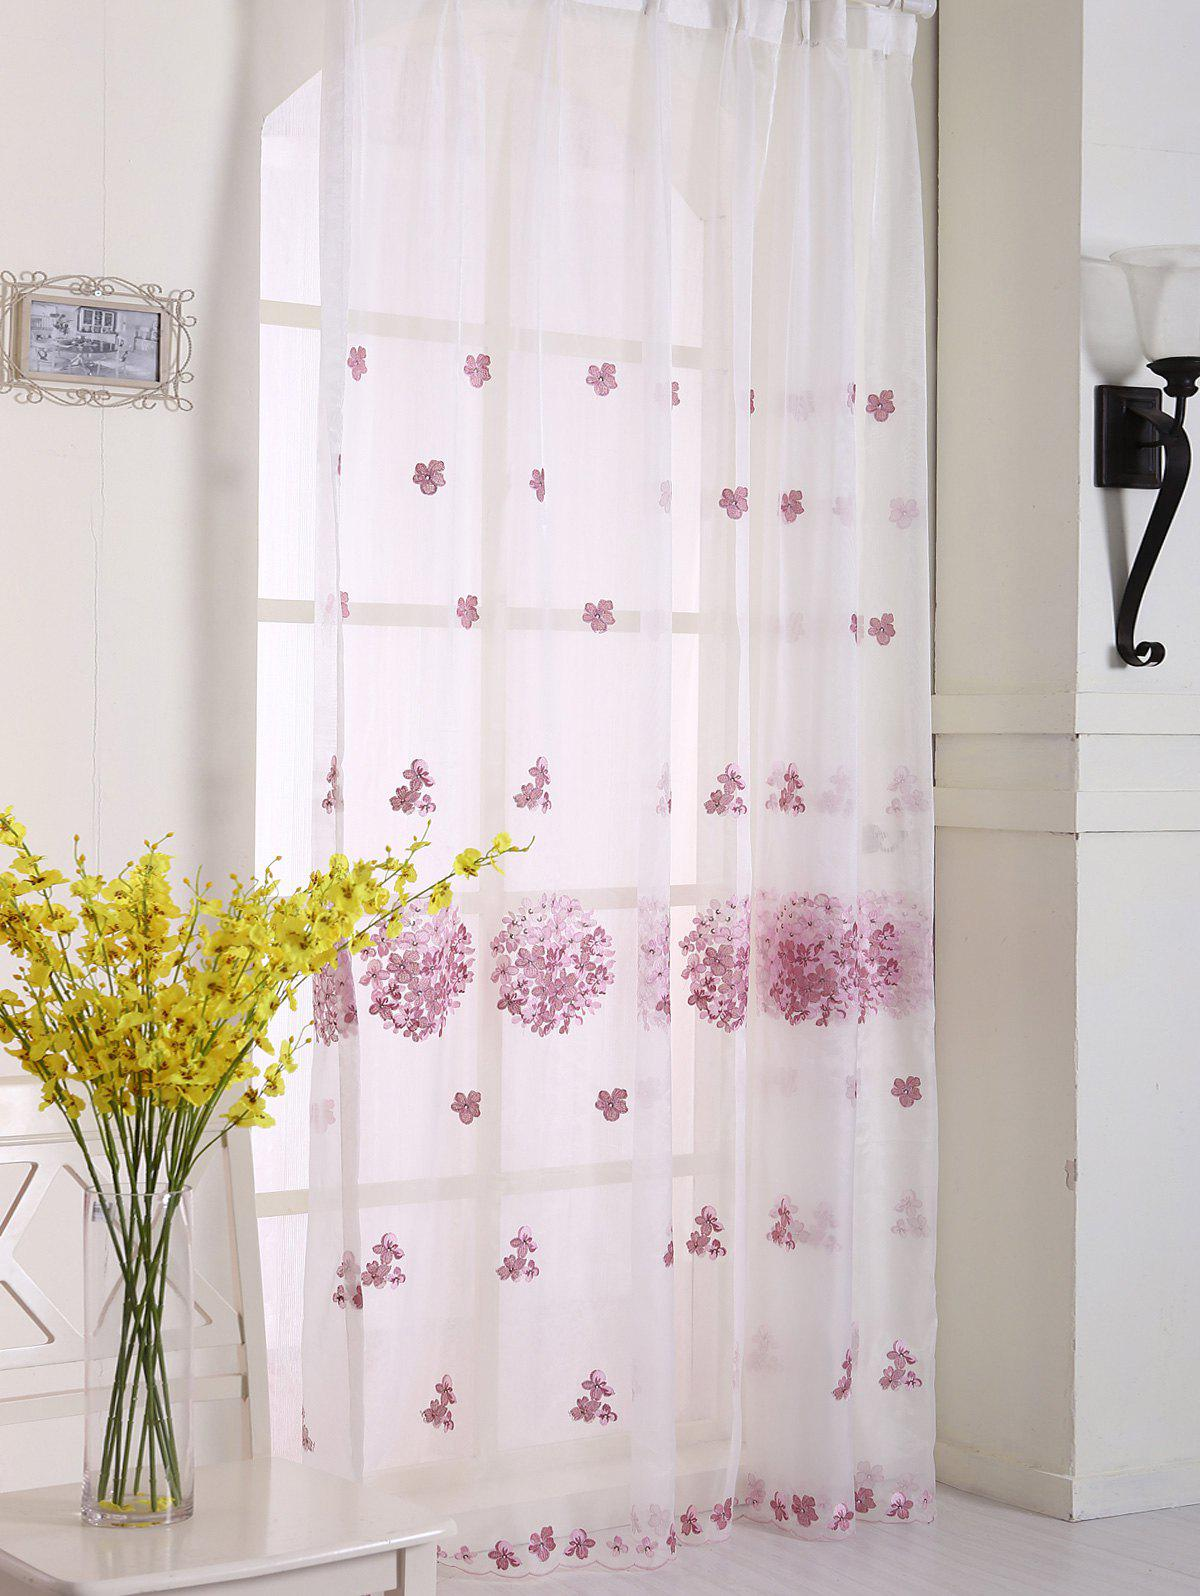 Hydrangea Print Sheer Voile Curtain Window Decor - [